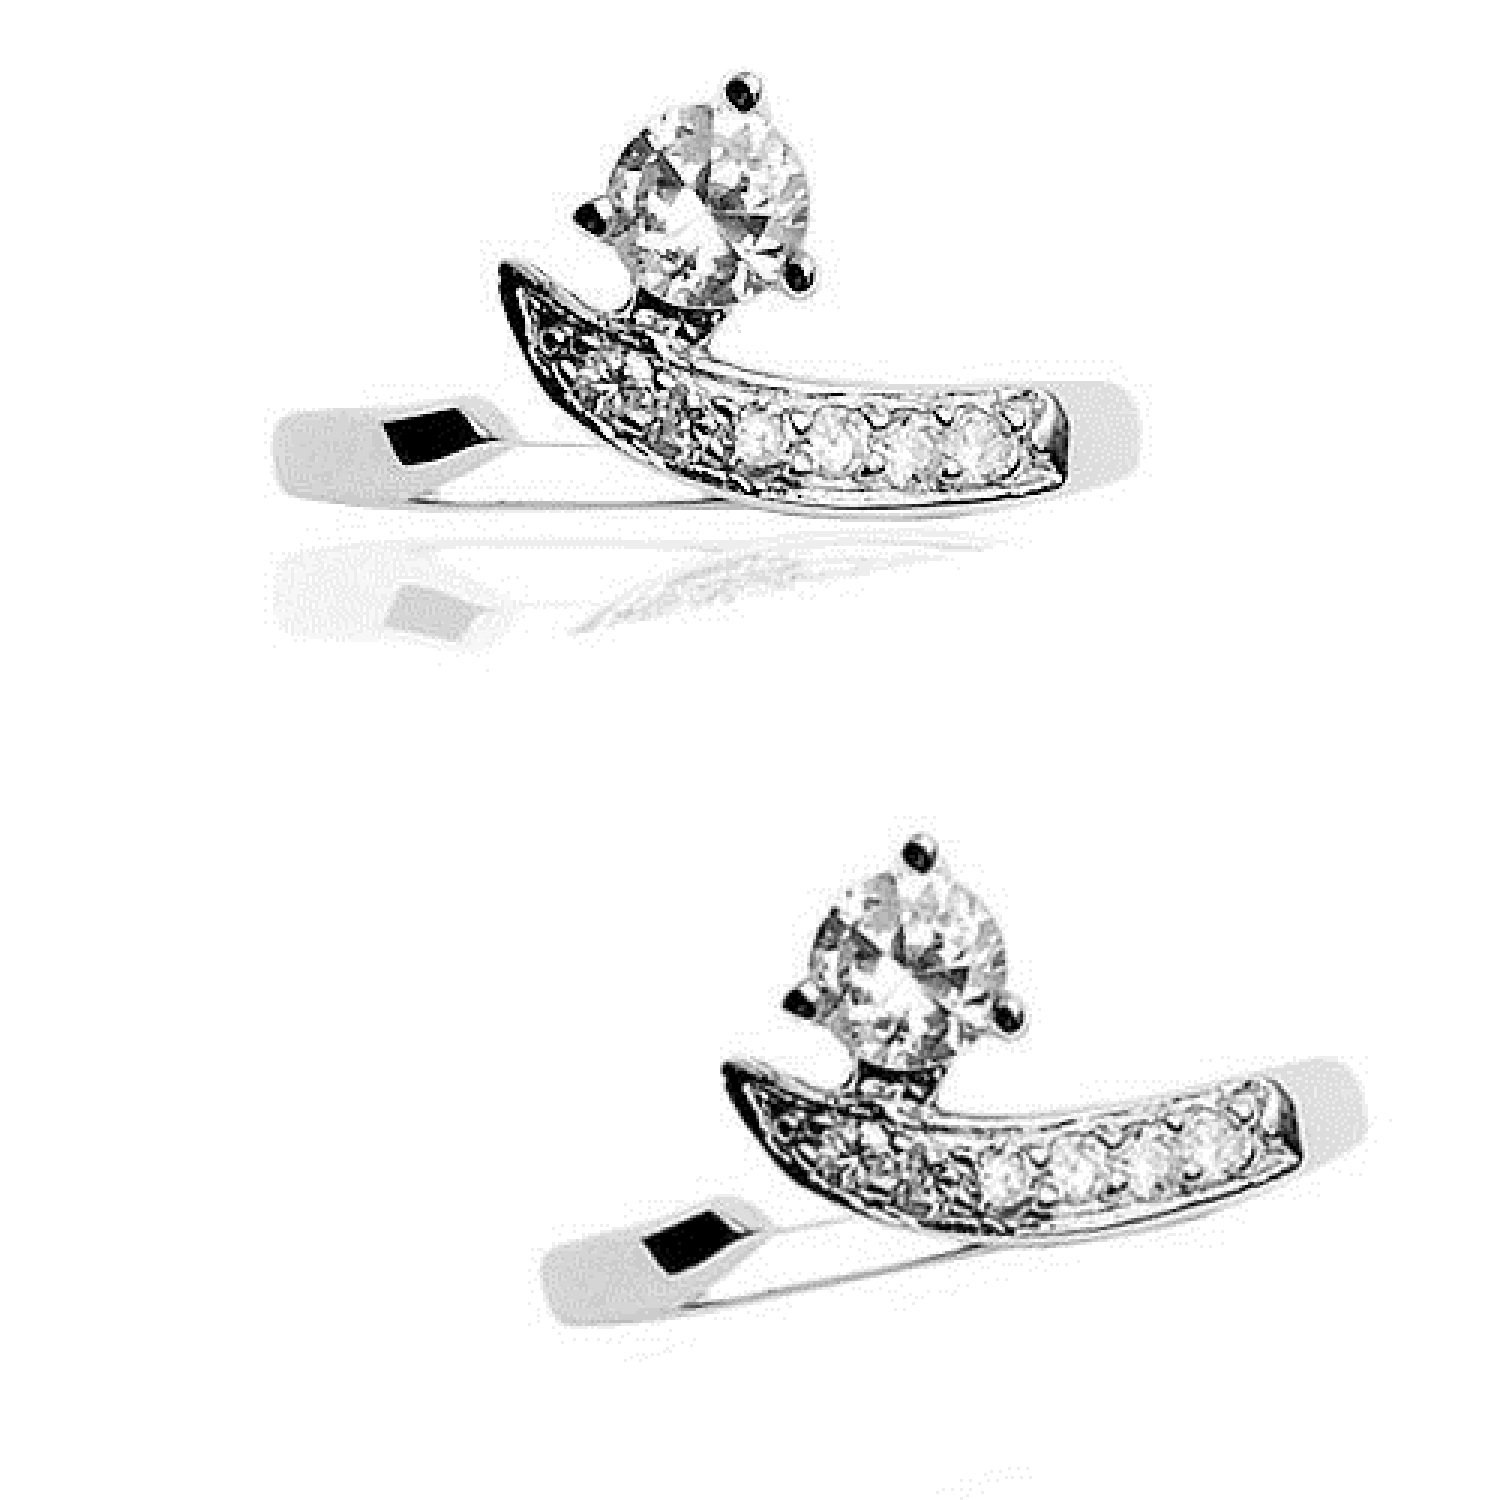 lala/_mcp 1 Pc Solid .925 Sterling Silver W//Solitaire Clear C.Z Adjustable Toe Ring